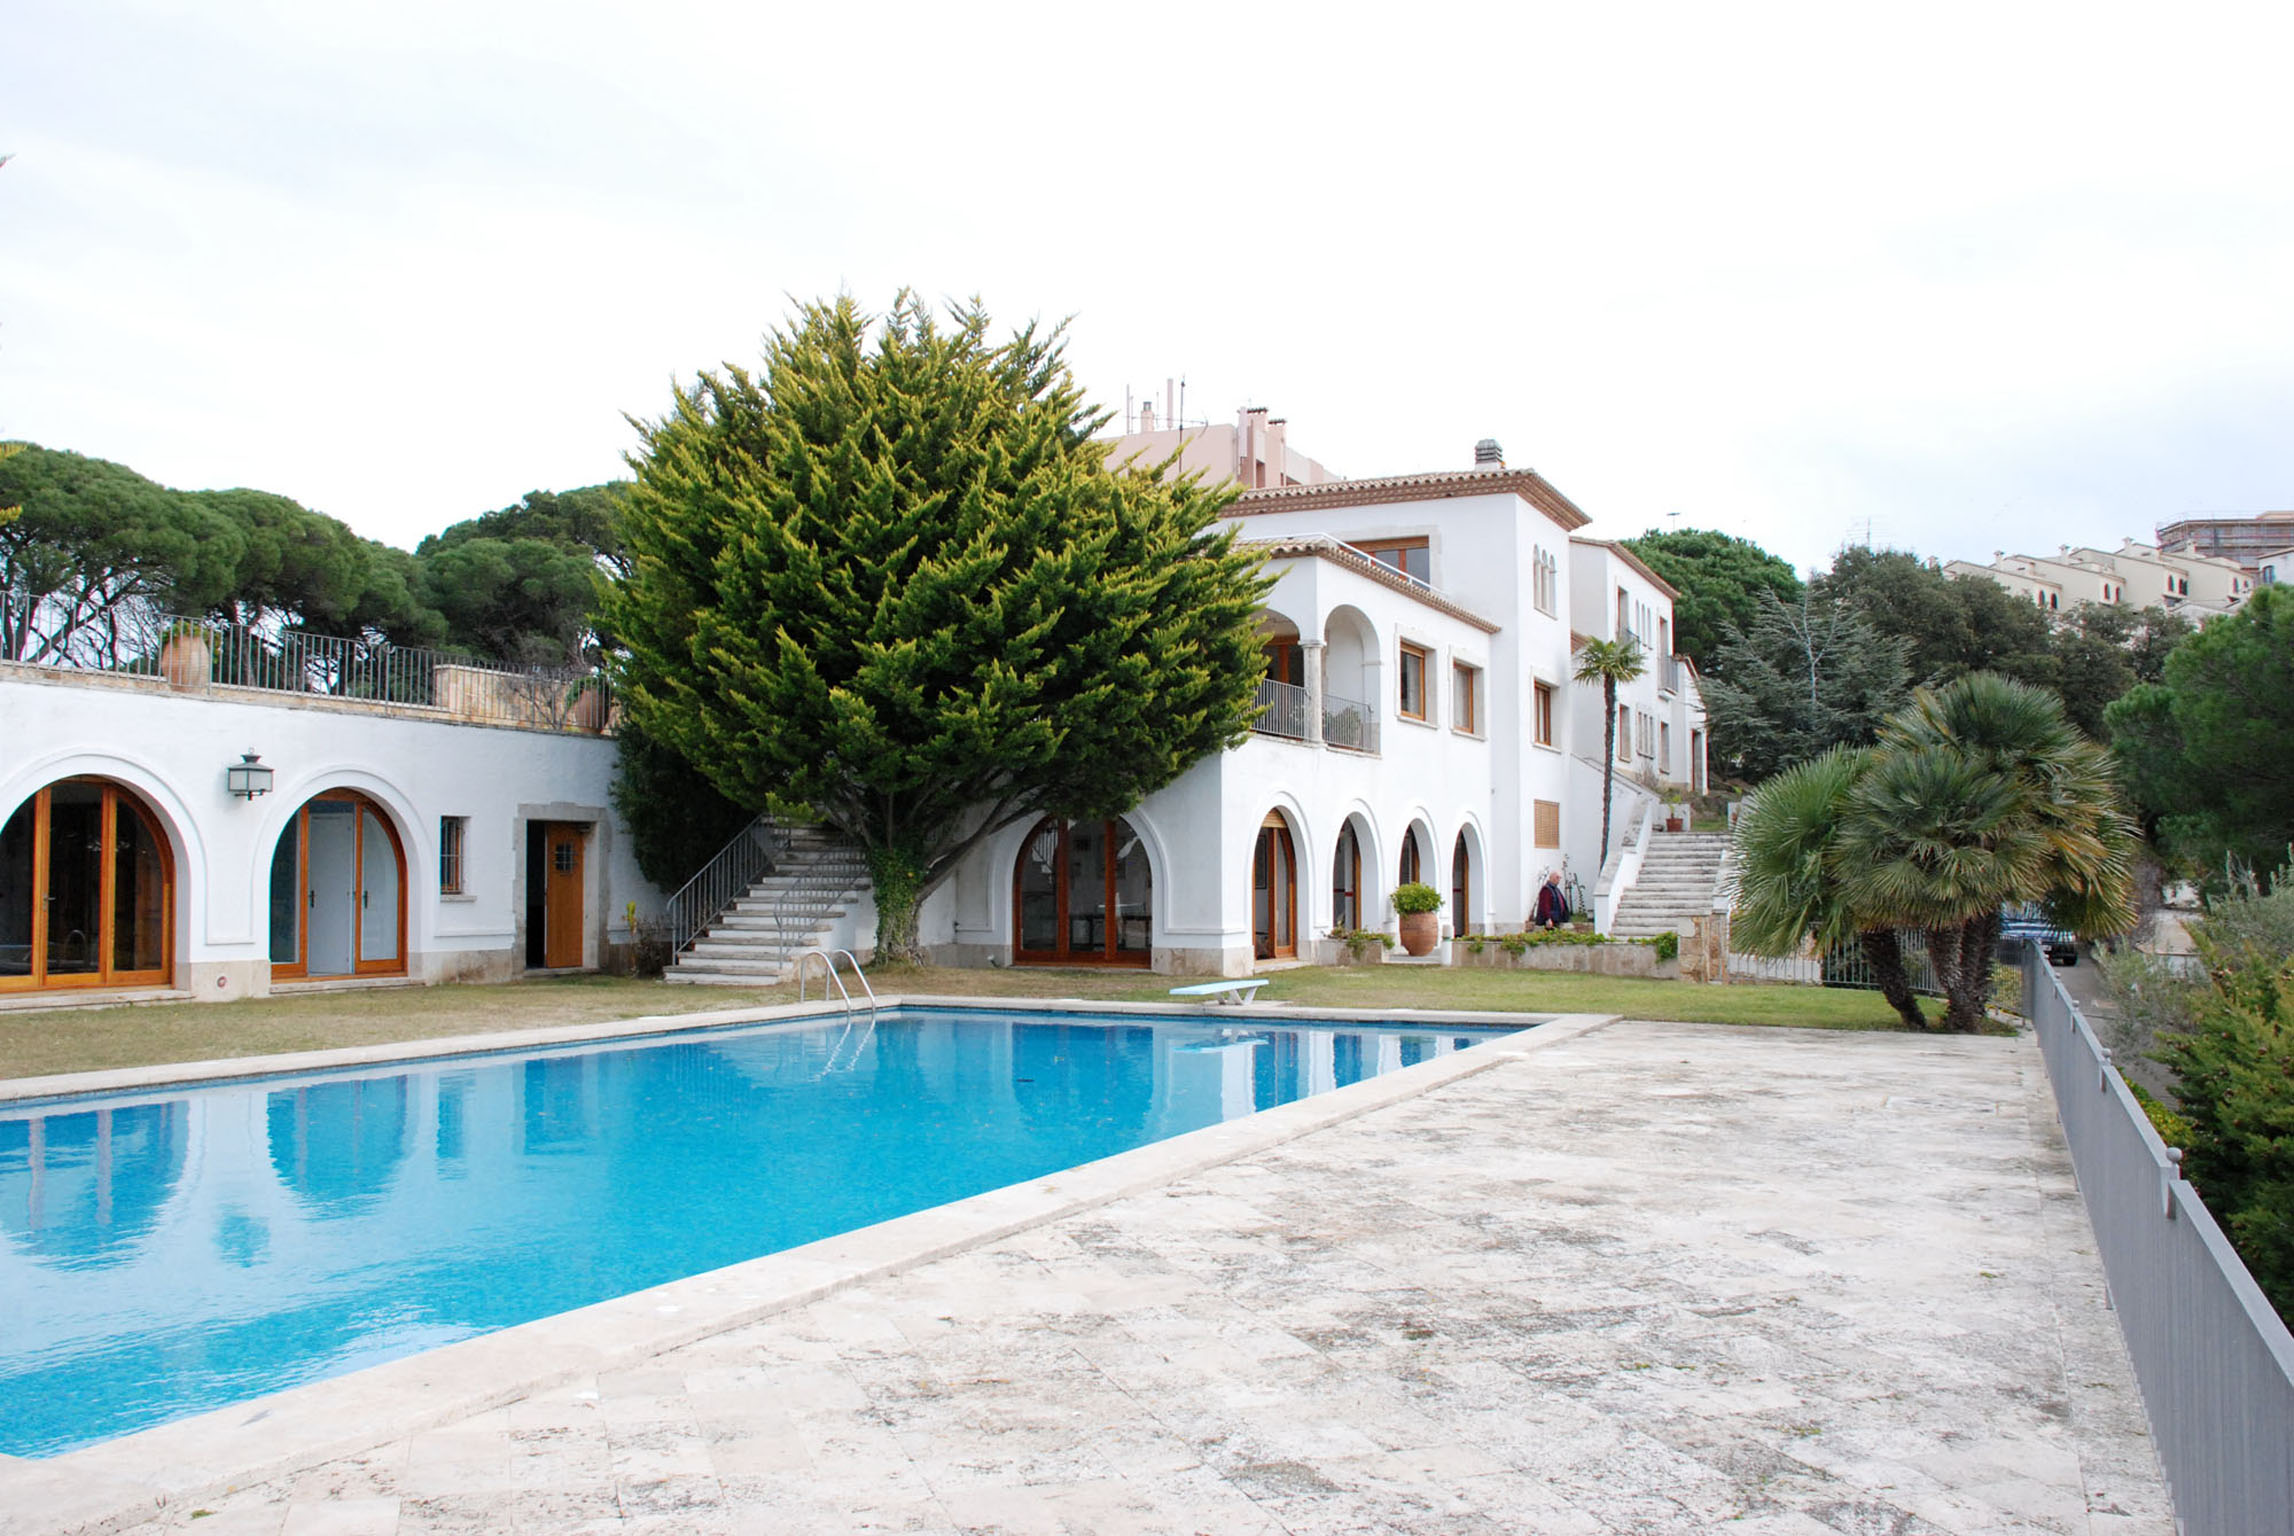 Luxury Holiday Villa on the Costa Brava